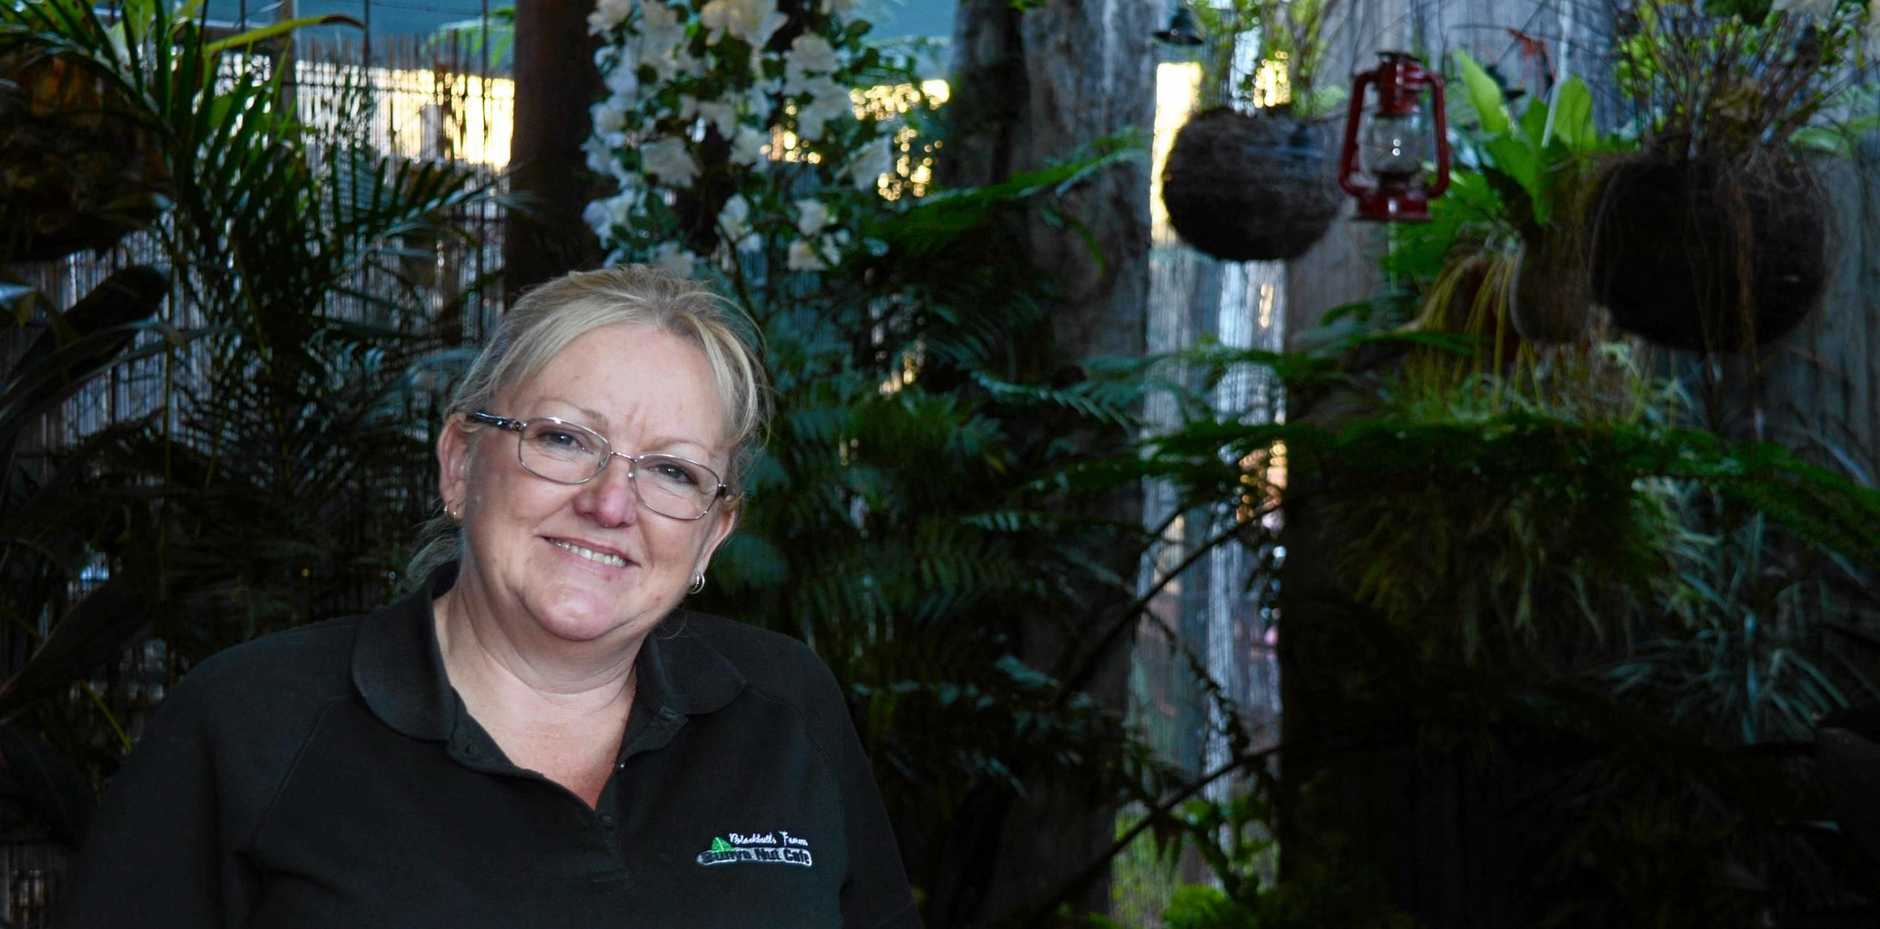 Evelyn Green from the Bunya Nut Cafe.